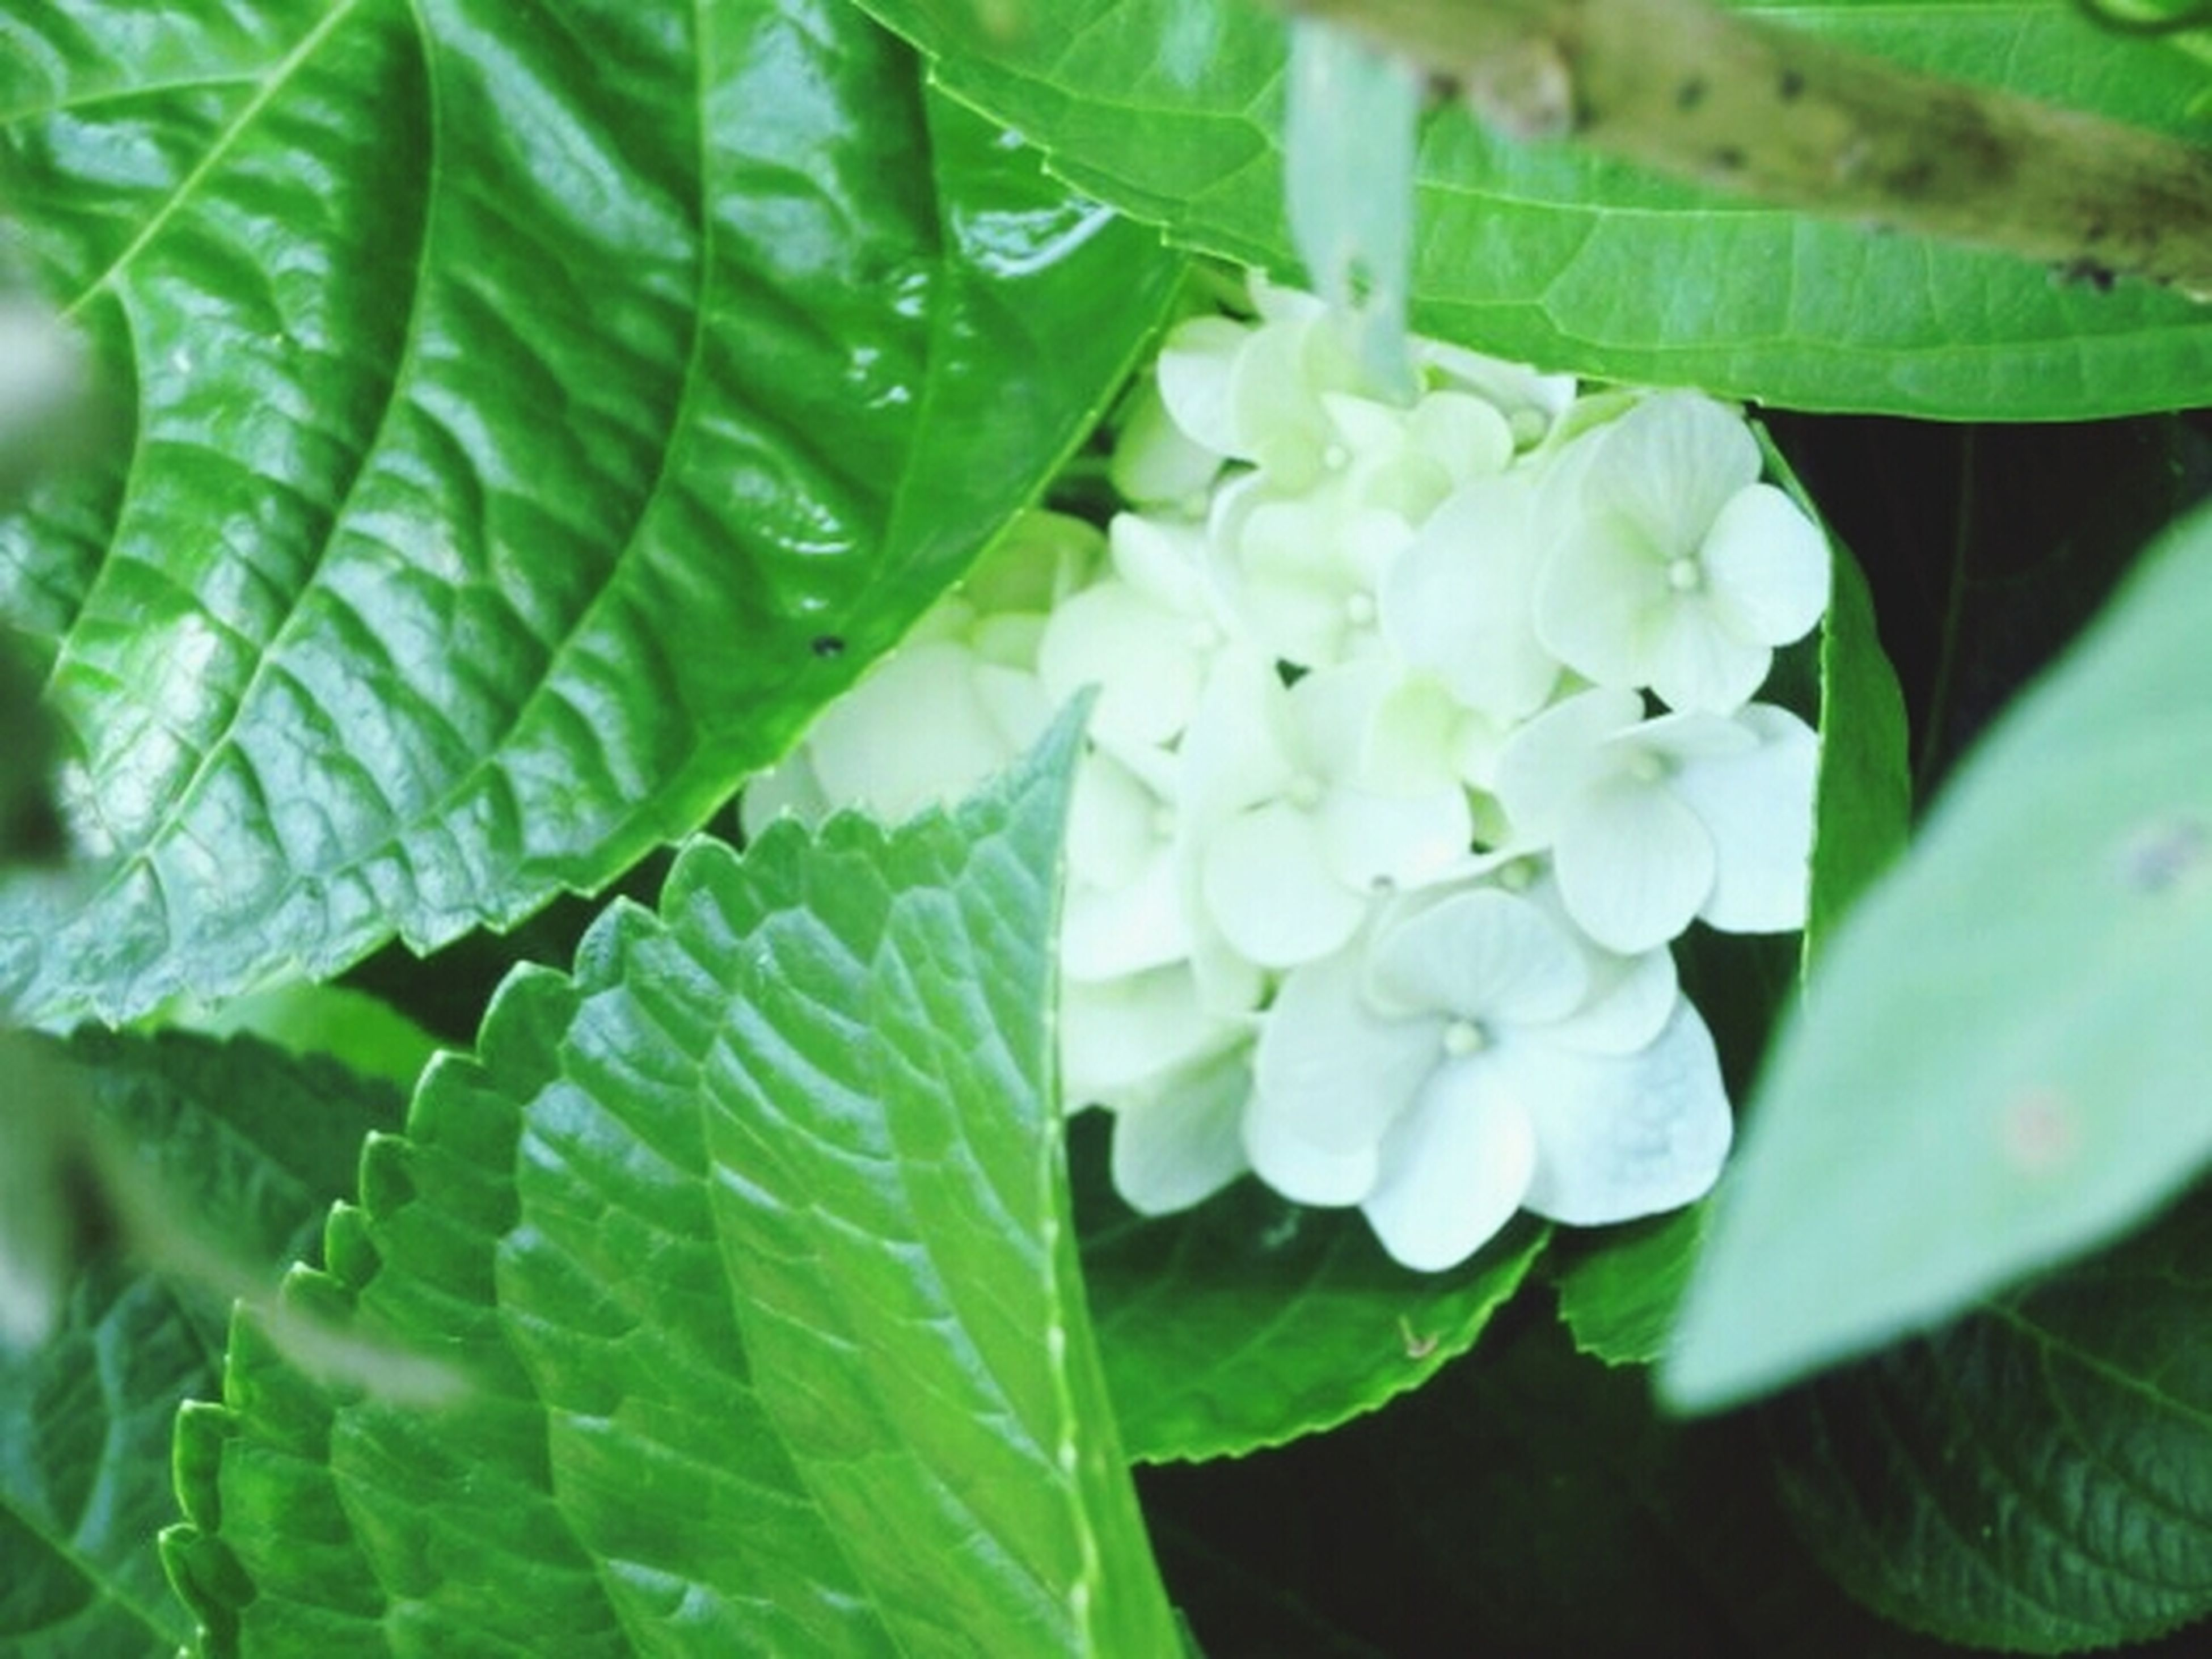 leaf, growth, freshness, green color, plant, fragility, beauty in nature, close-up, flower, nature, focus on foreground, water, petal, white color, high angle view, drop, outdoors, green, day, no people